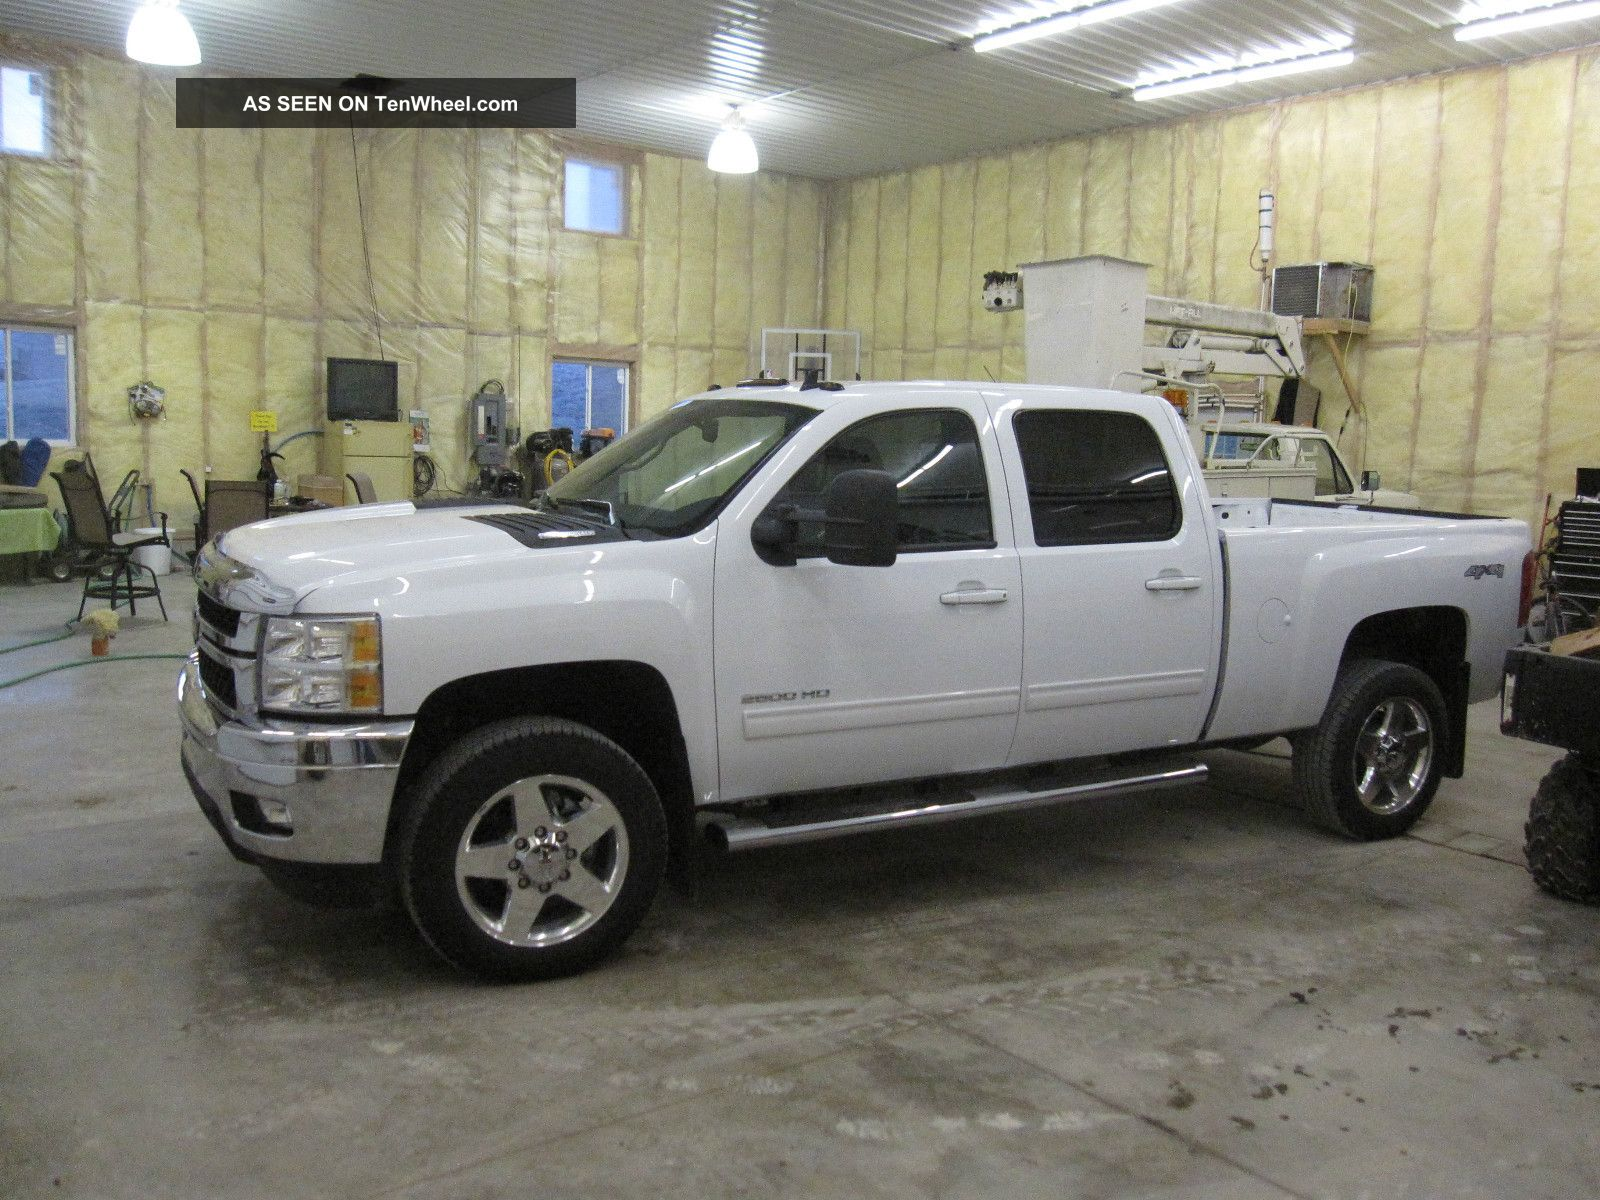 2011 chevy silverado 2500 crew cab 4wd ltz duramax. Black Bedroom Furniture Sets. Home Design Ideas